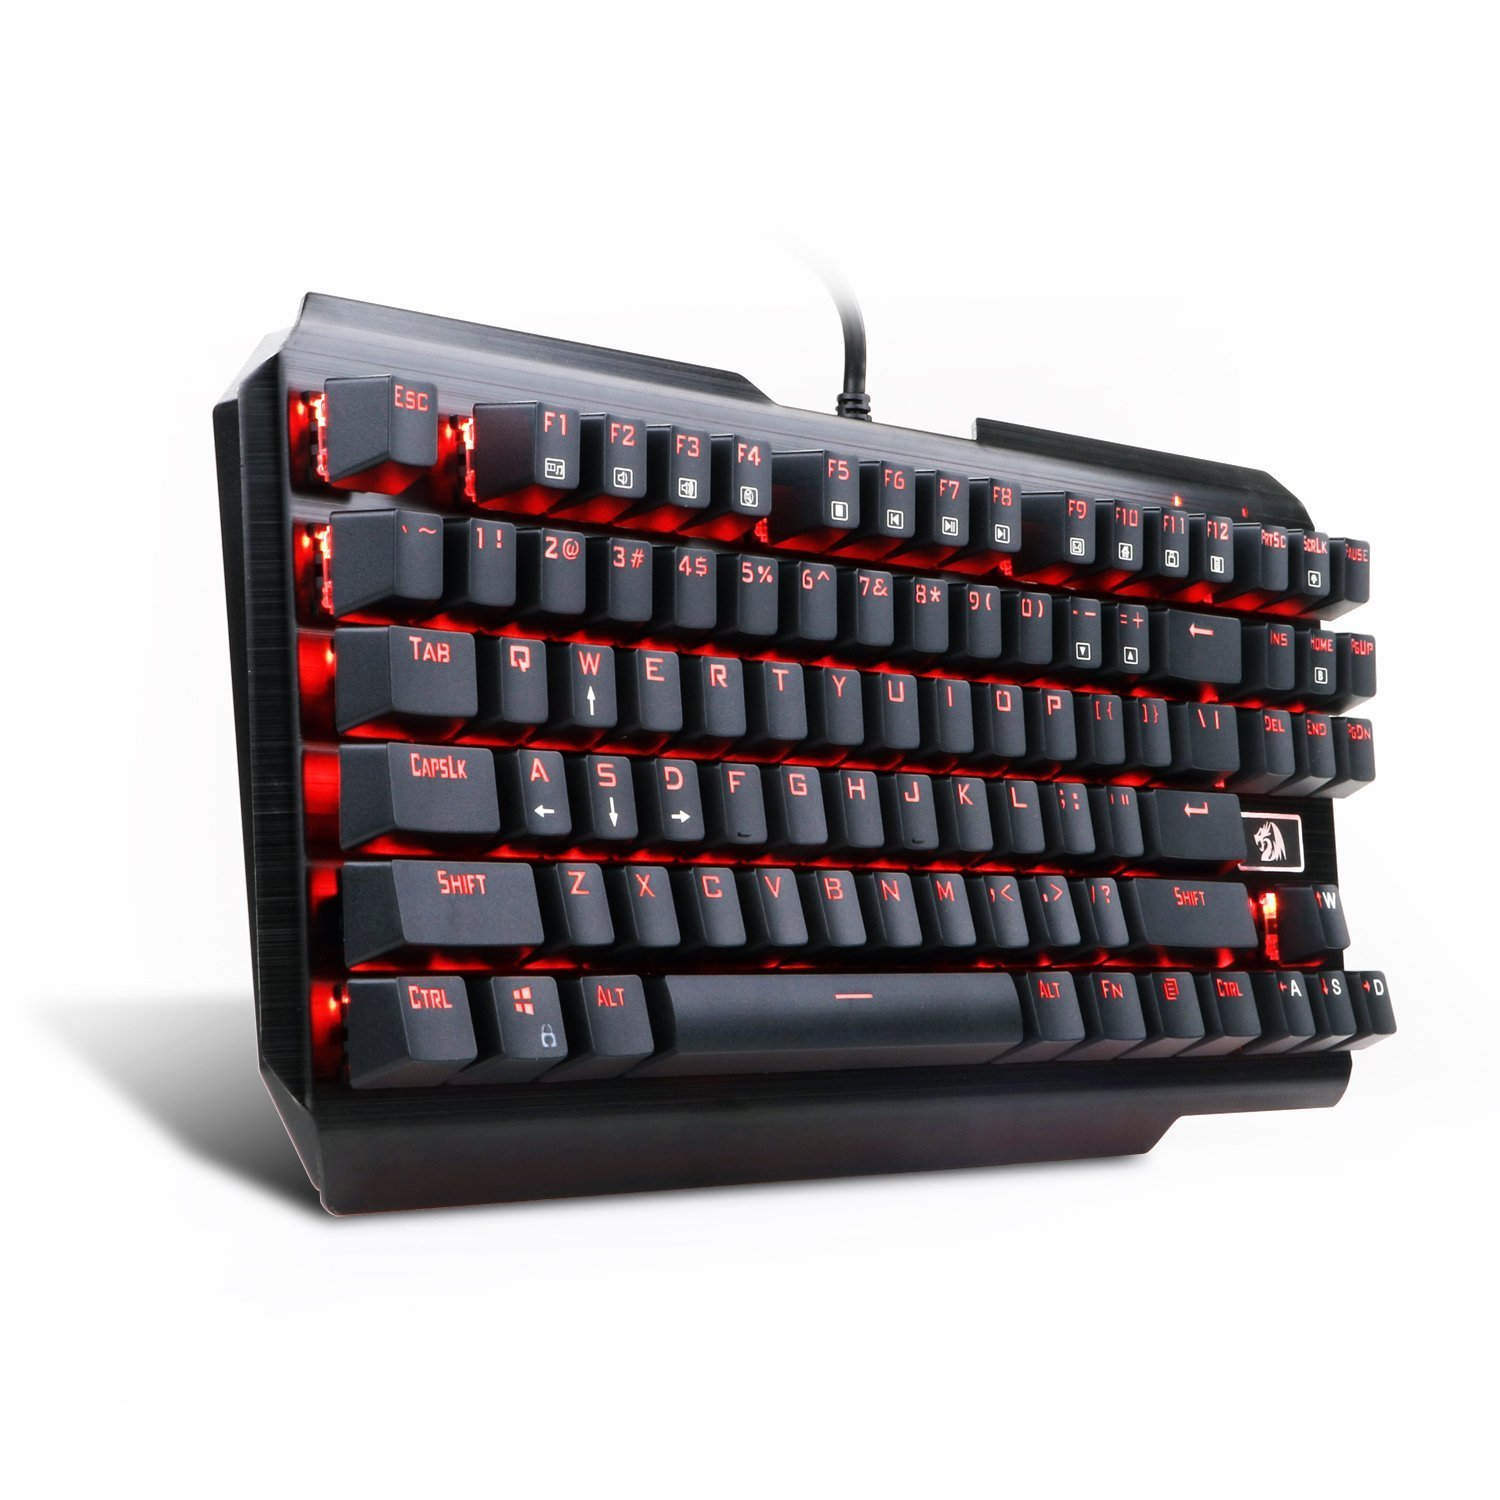 Amazon mechanical keyboard - Amazon Com Redragon K553 Usas Led Backlit Mechanical Gaming Keyboard Black Computers Accessories